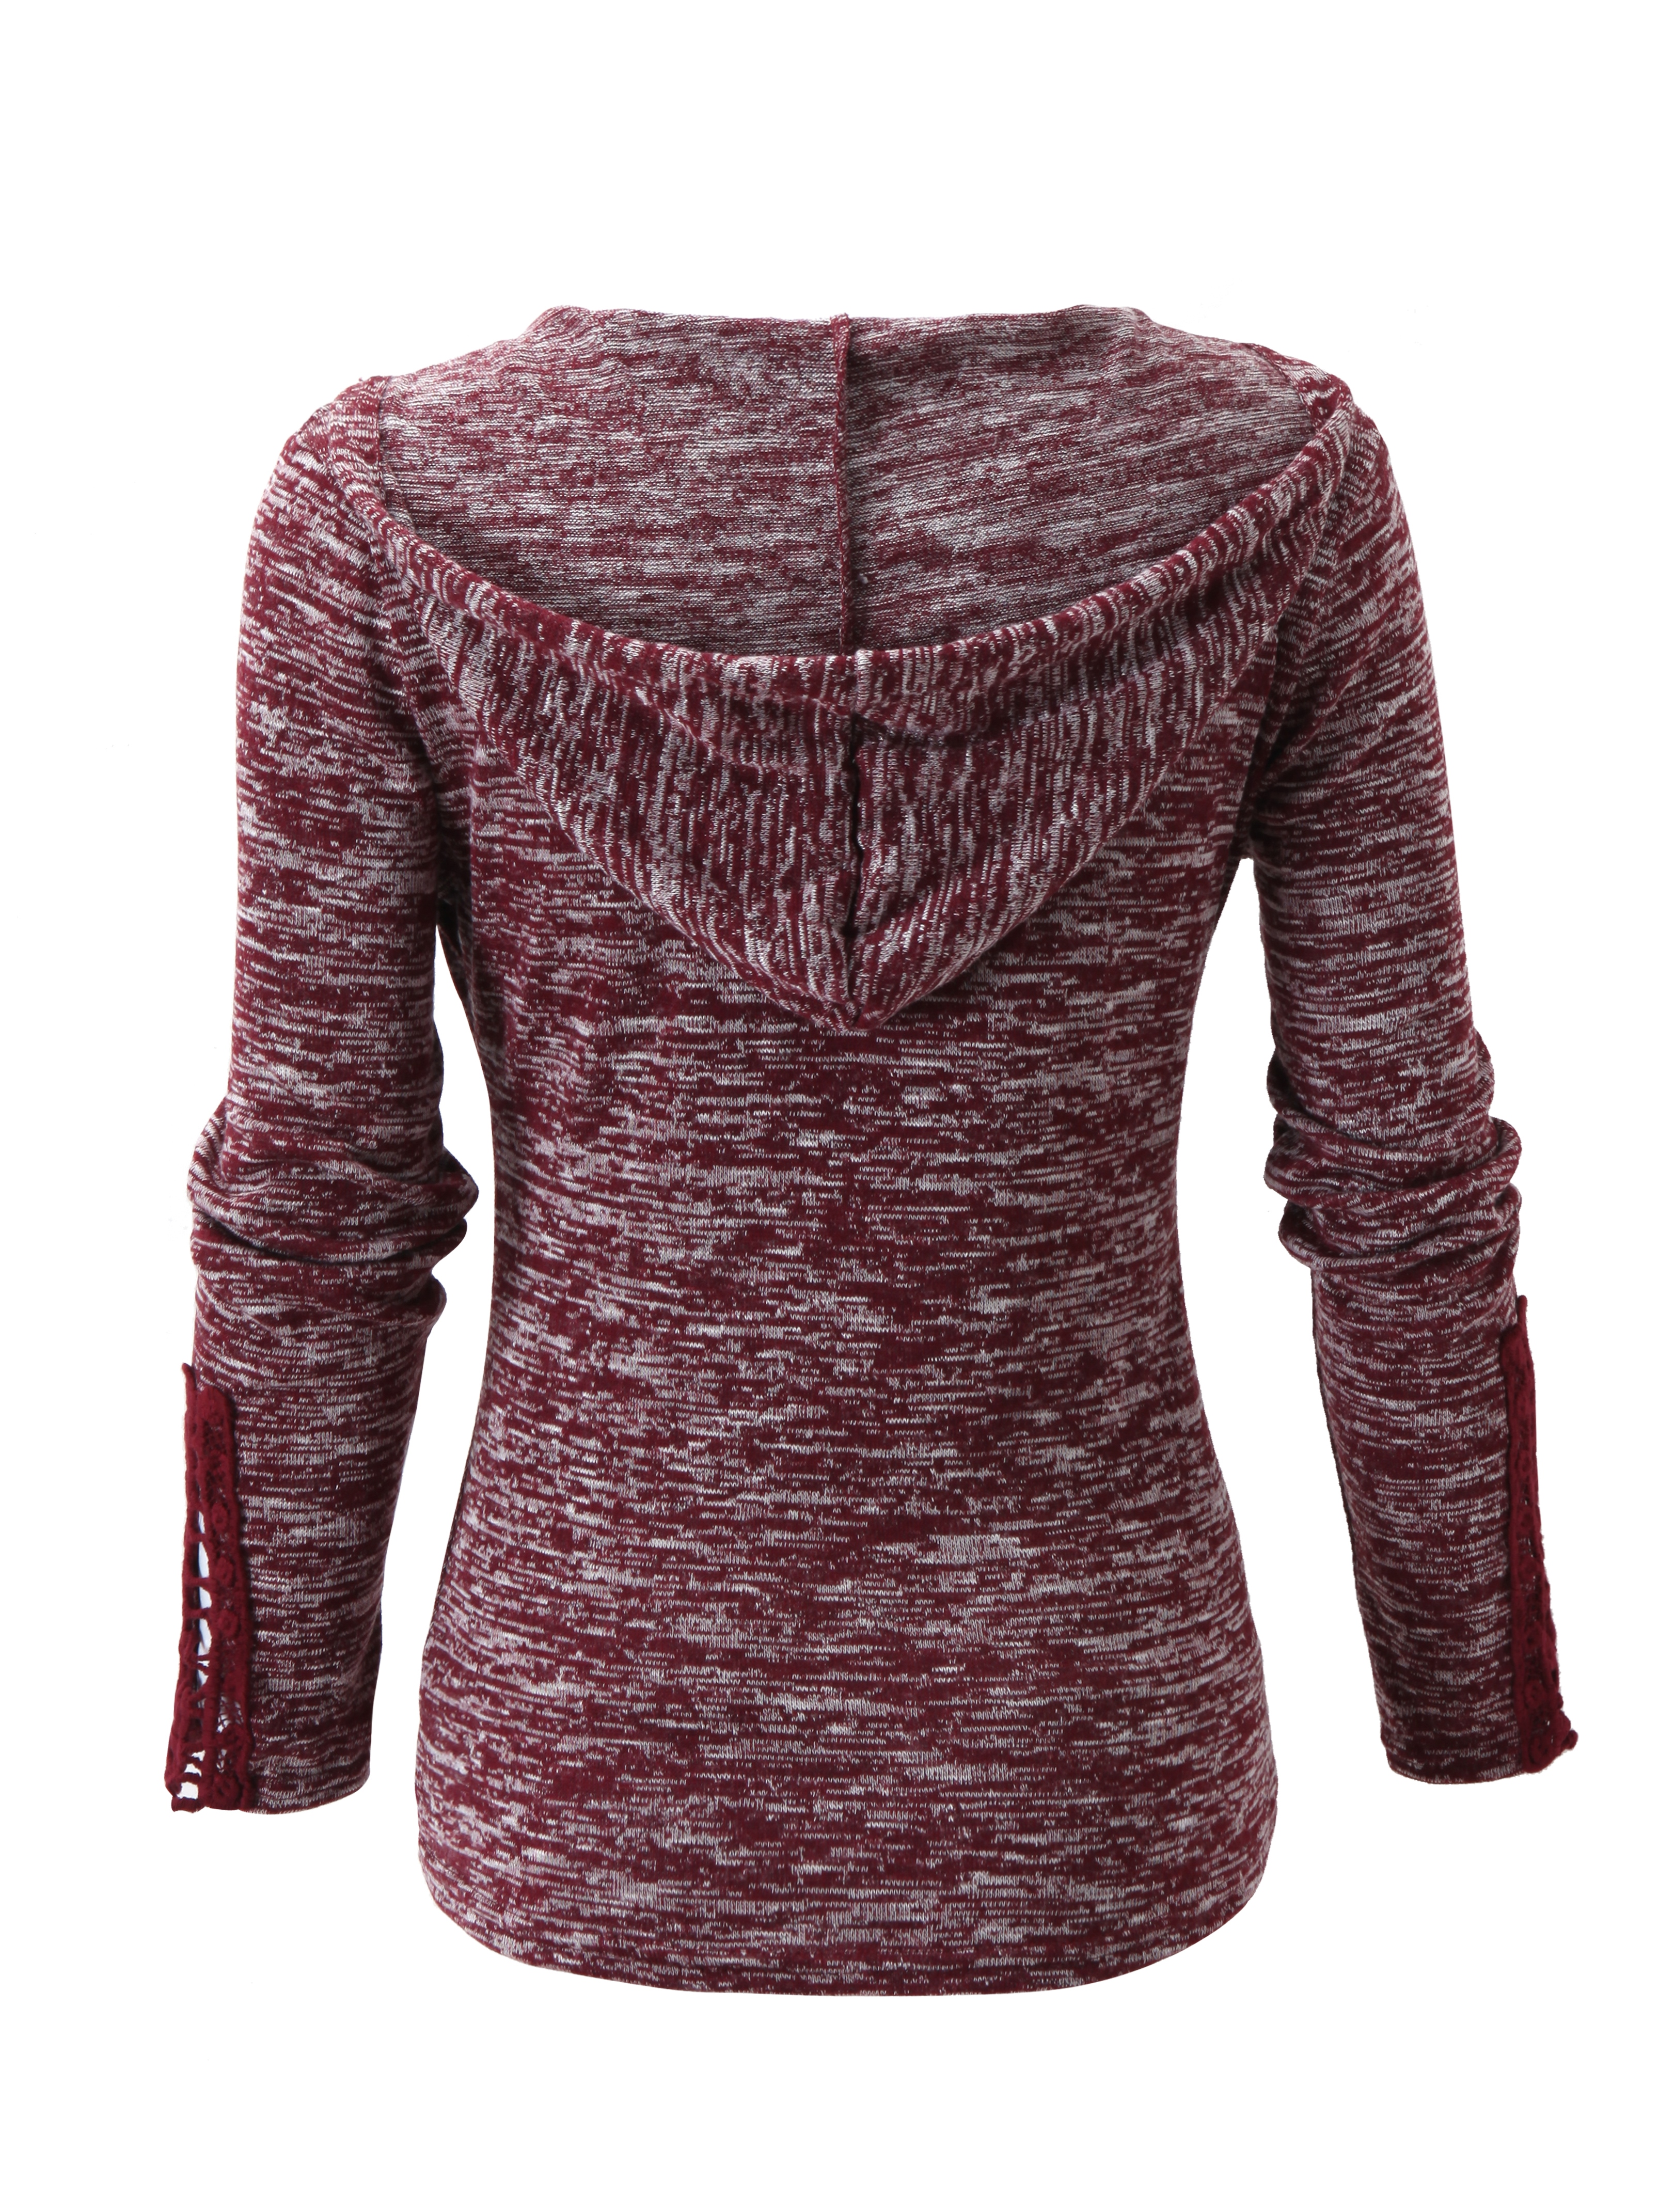 Ericdress Euro-American Style Hooded T-shirt